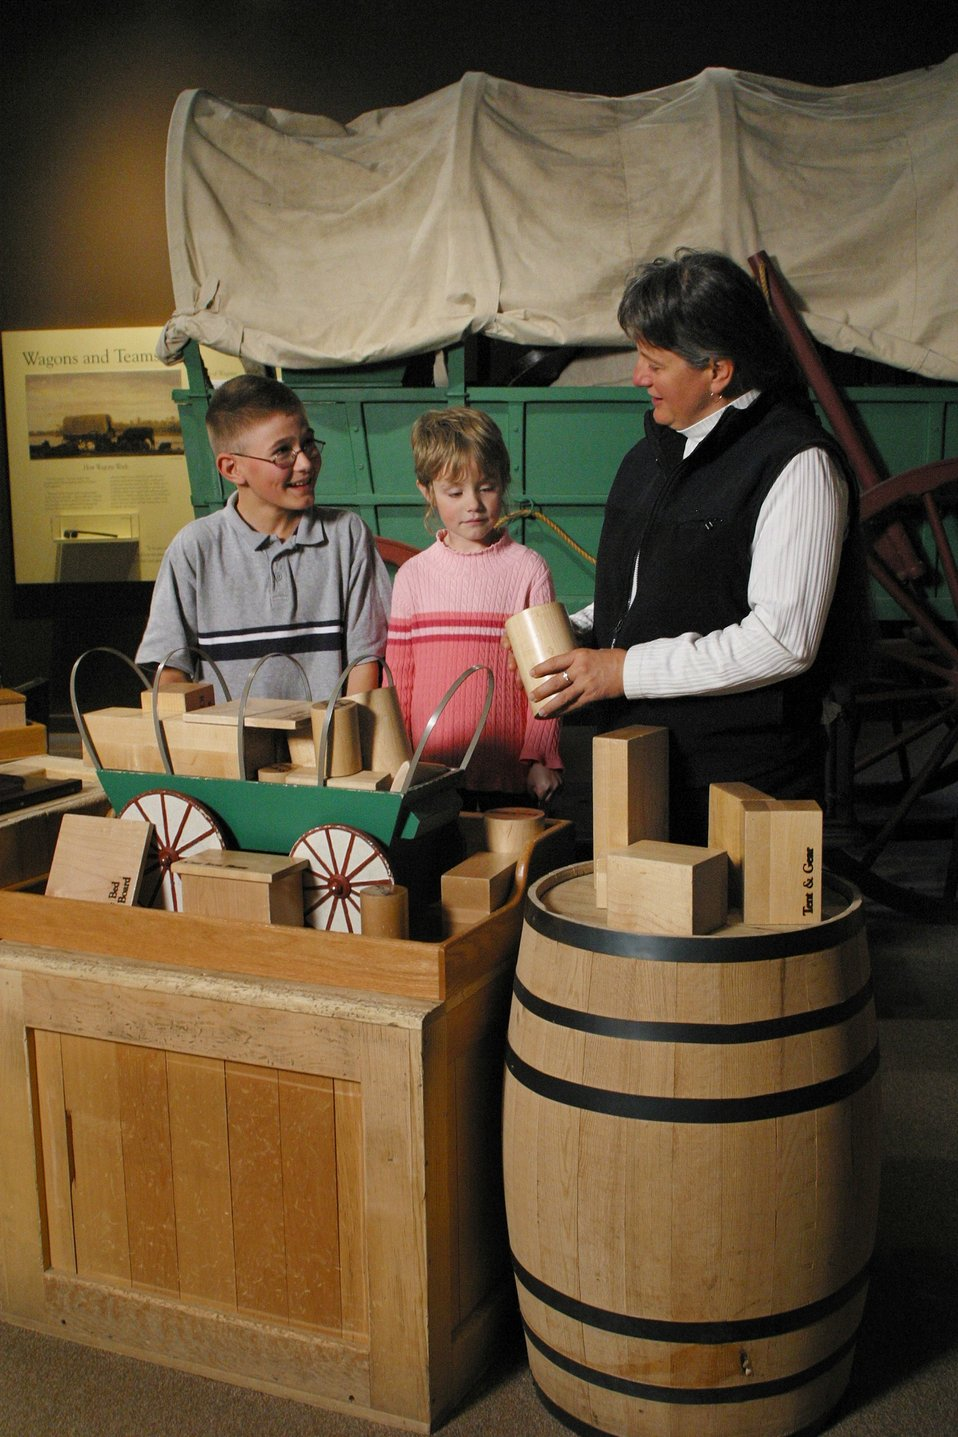 Visitors can use the interactive display to decide what to put into their wagon before leaving on their Oregon Trail journey.